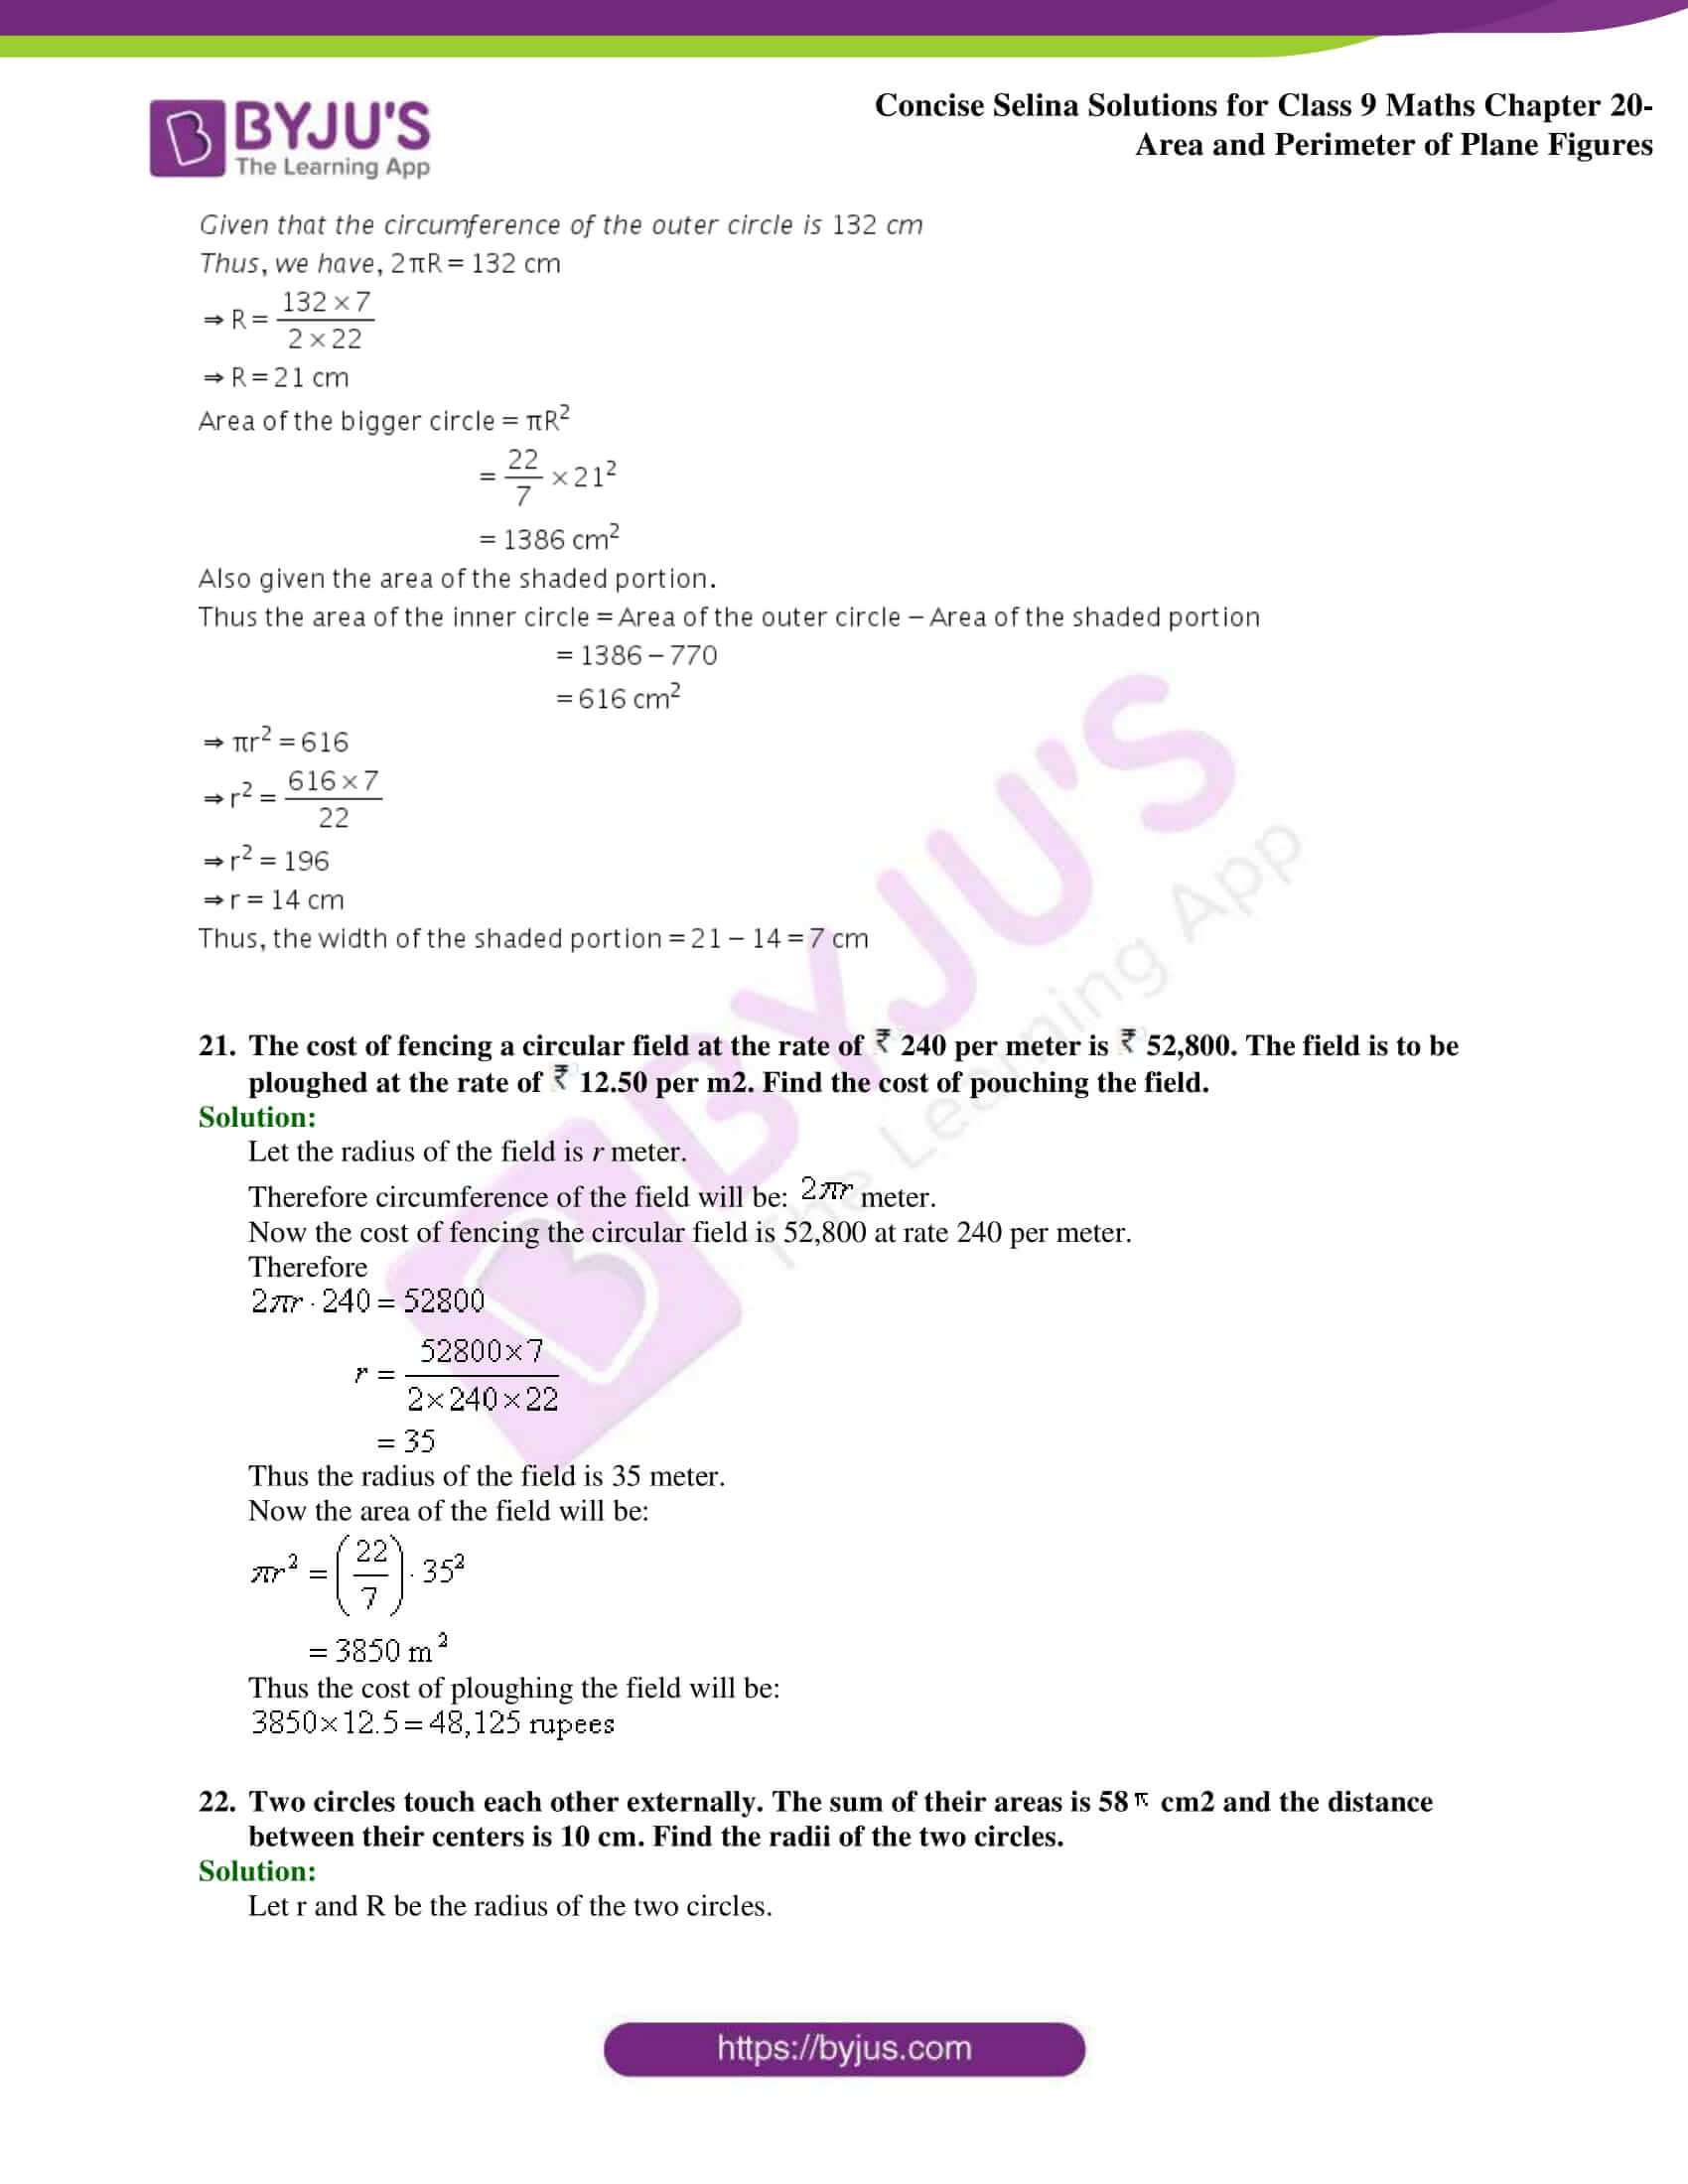 Concise Selina Solutions Class 9 Maths Chapter 20 Area and Perimeter of Plane part 42